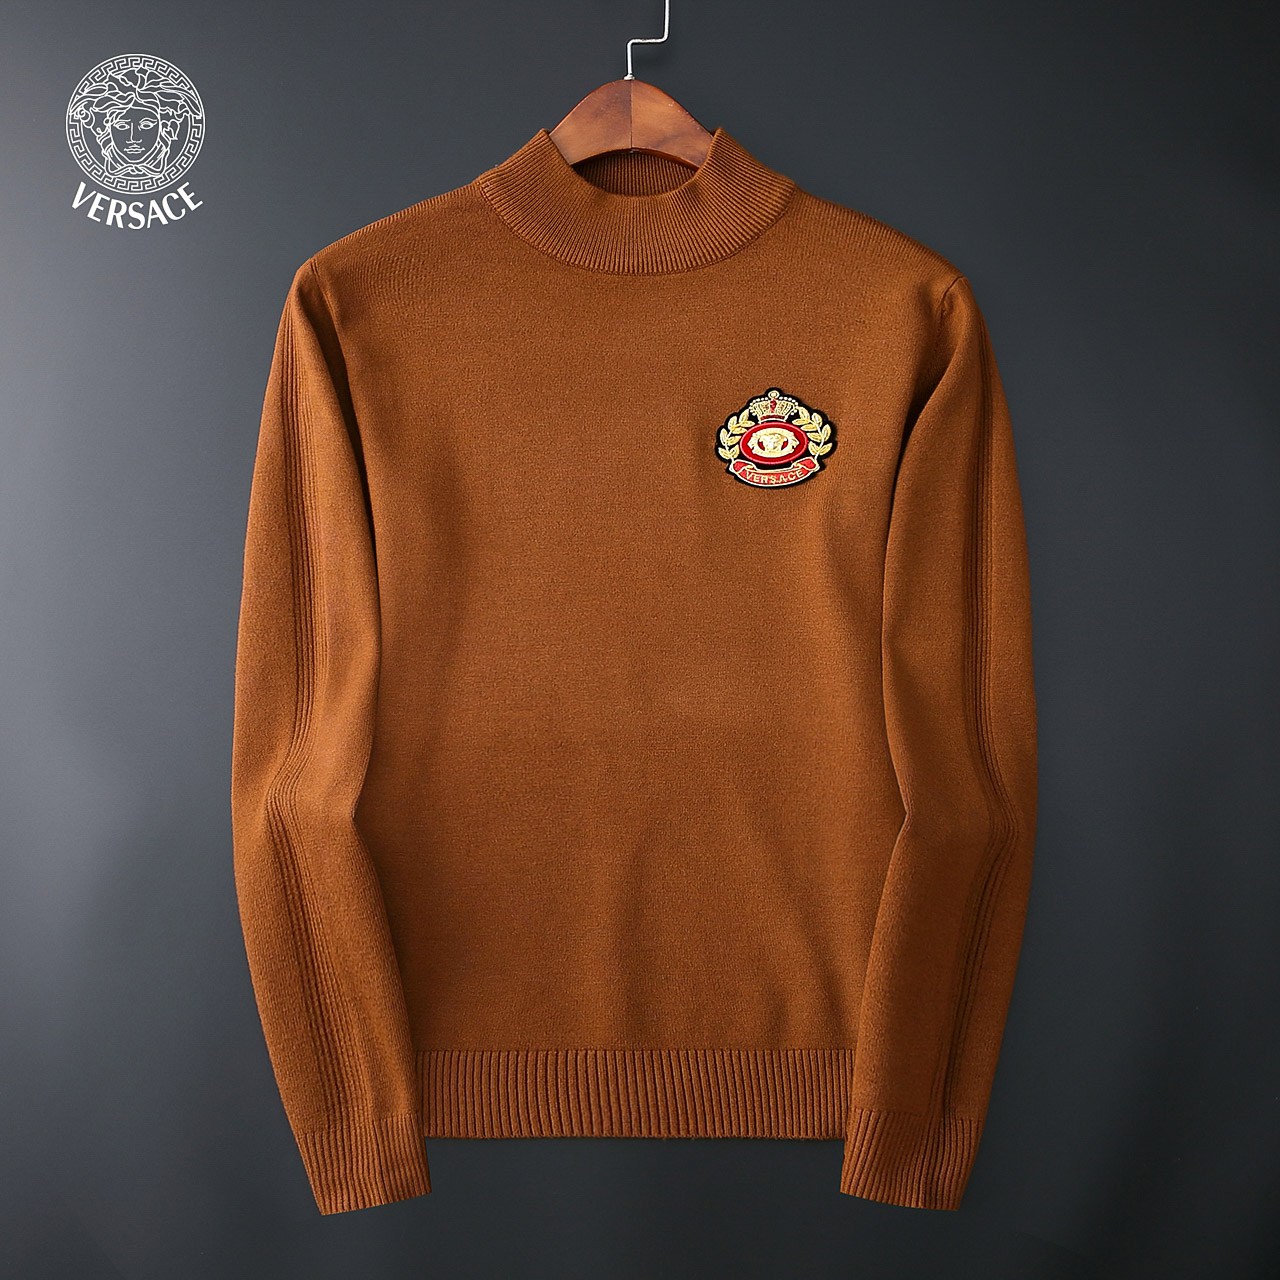 Replica Versace Sweaters For men